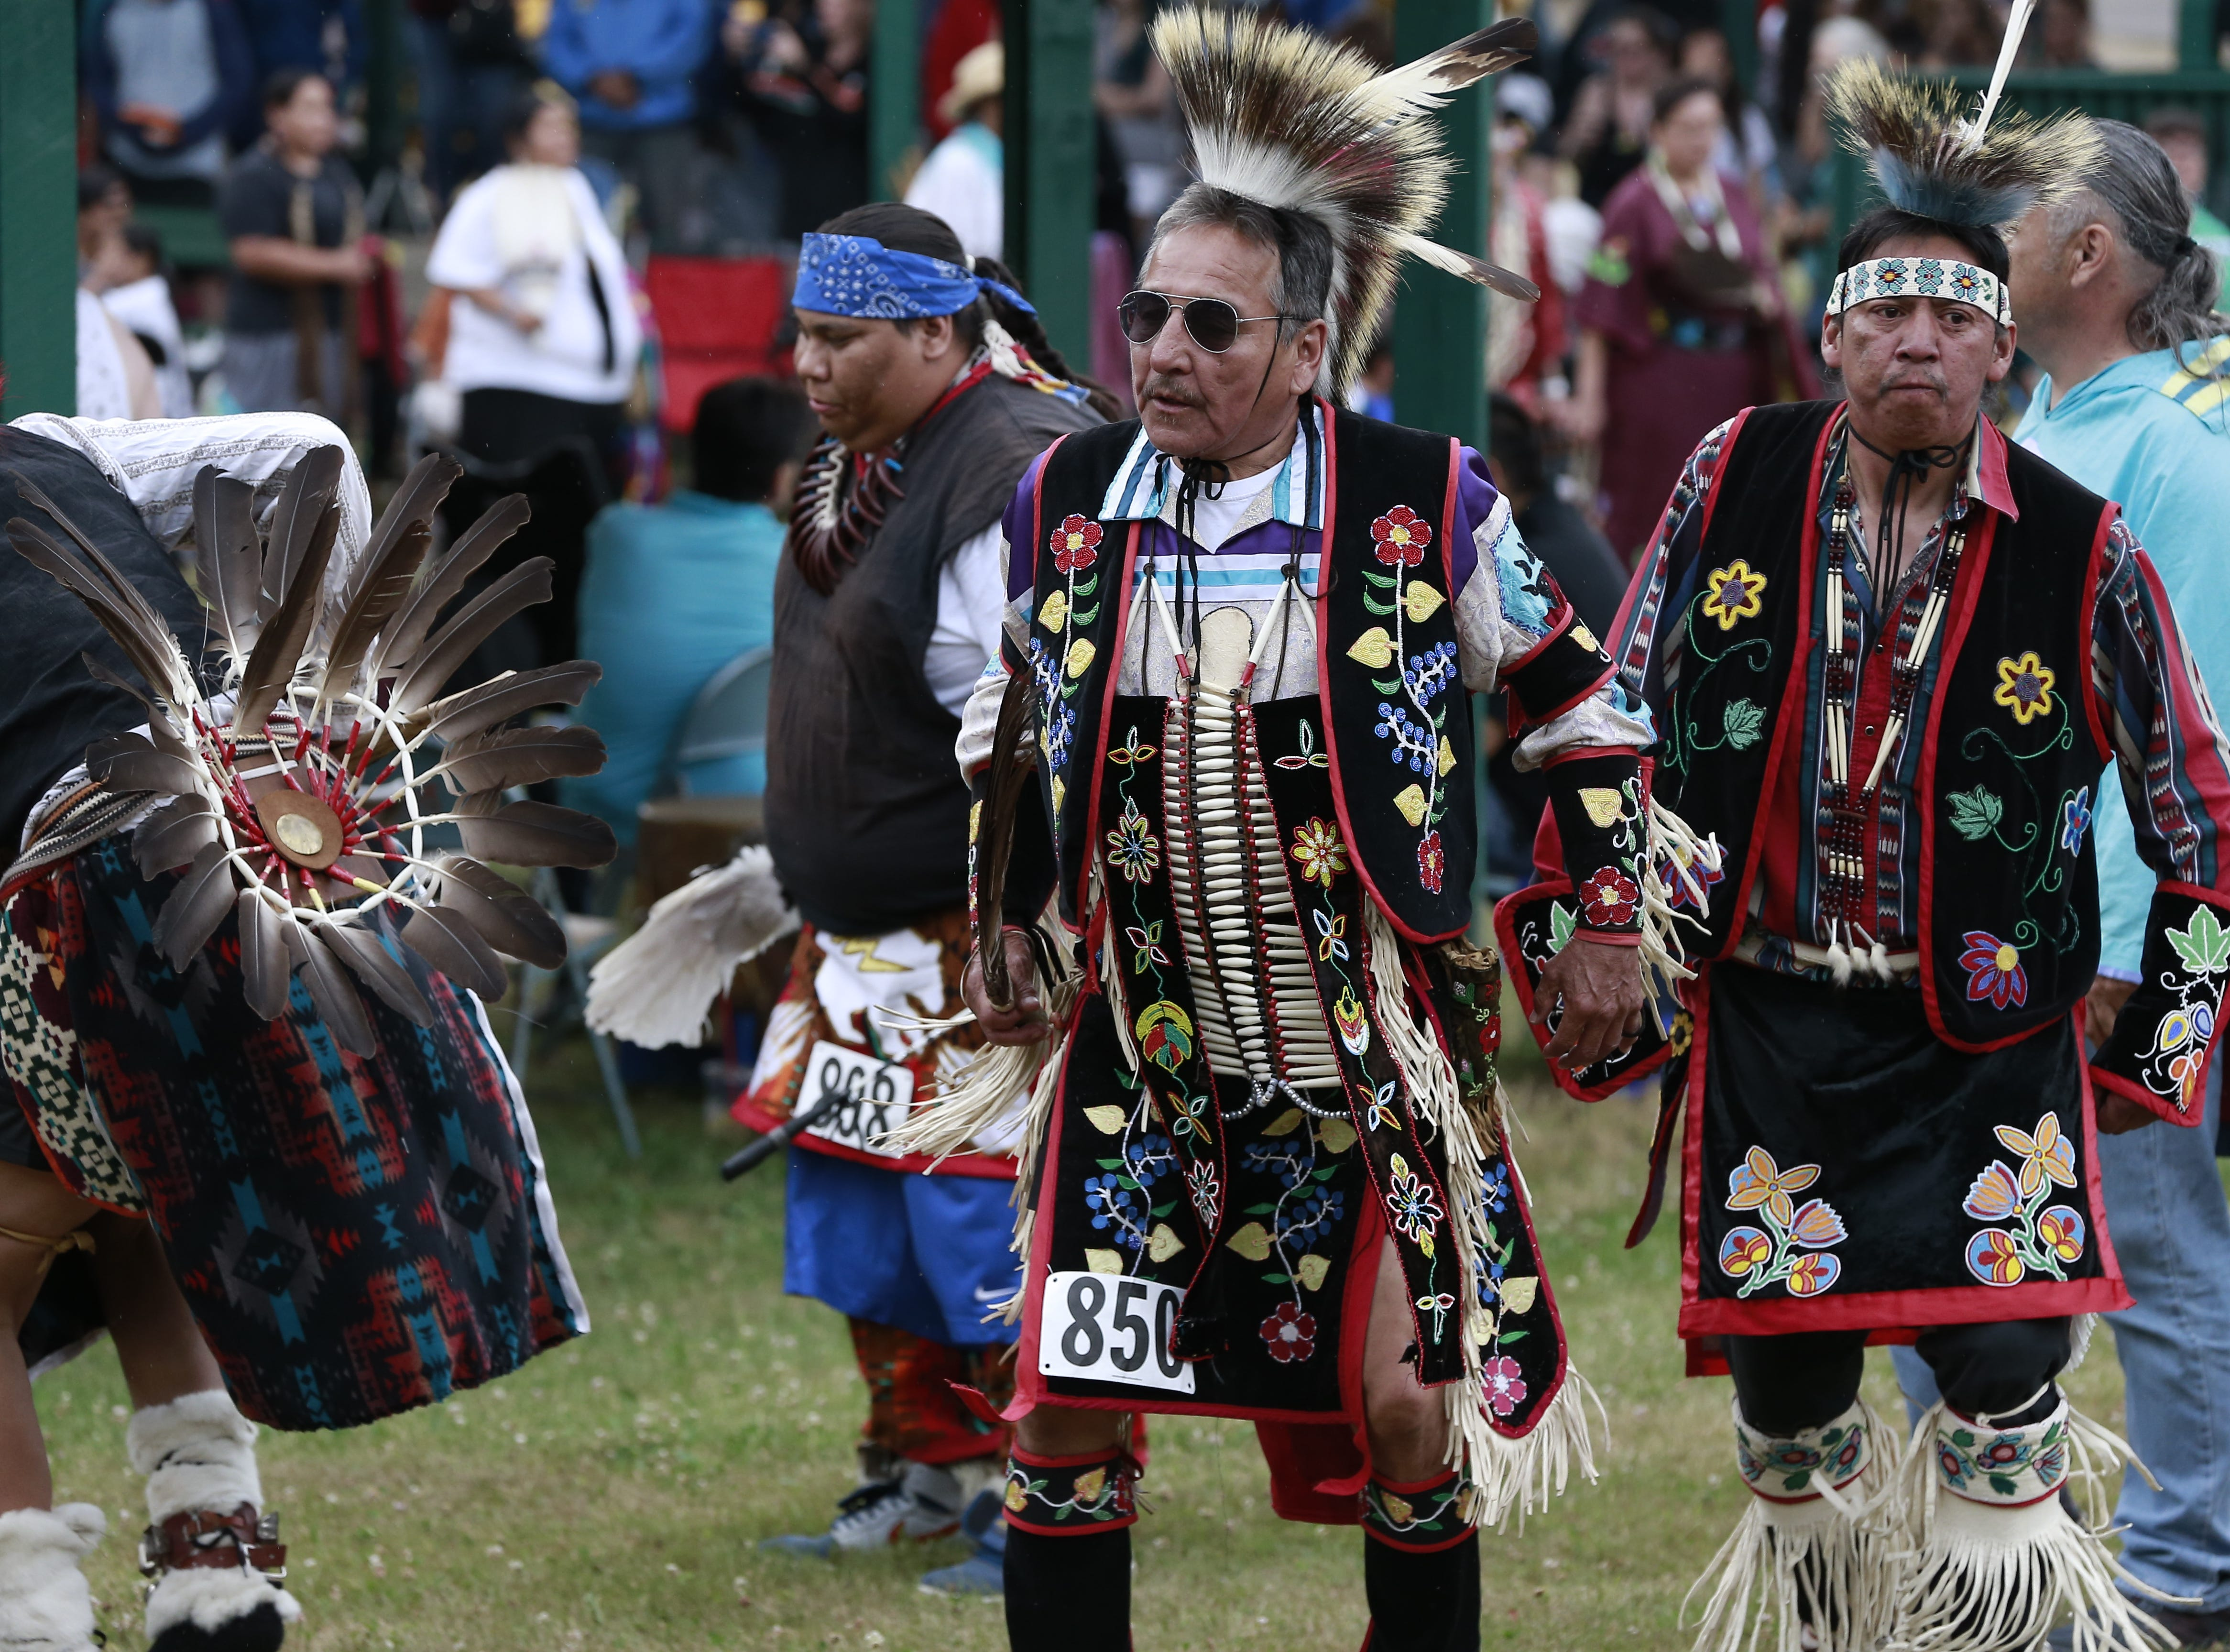 Native Americans from various tribes gather Friday, July 20, 2018, to celebrate the Honor the Earth Pow-wow event at LCO School in Hayward, Wis.